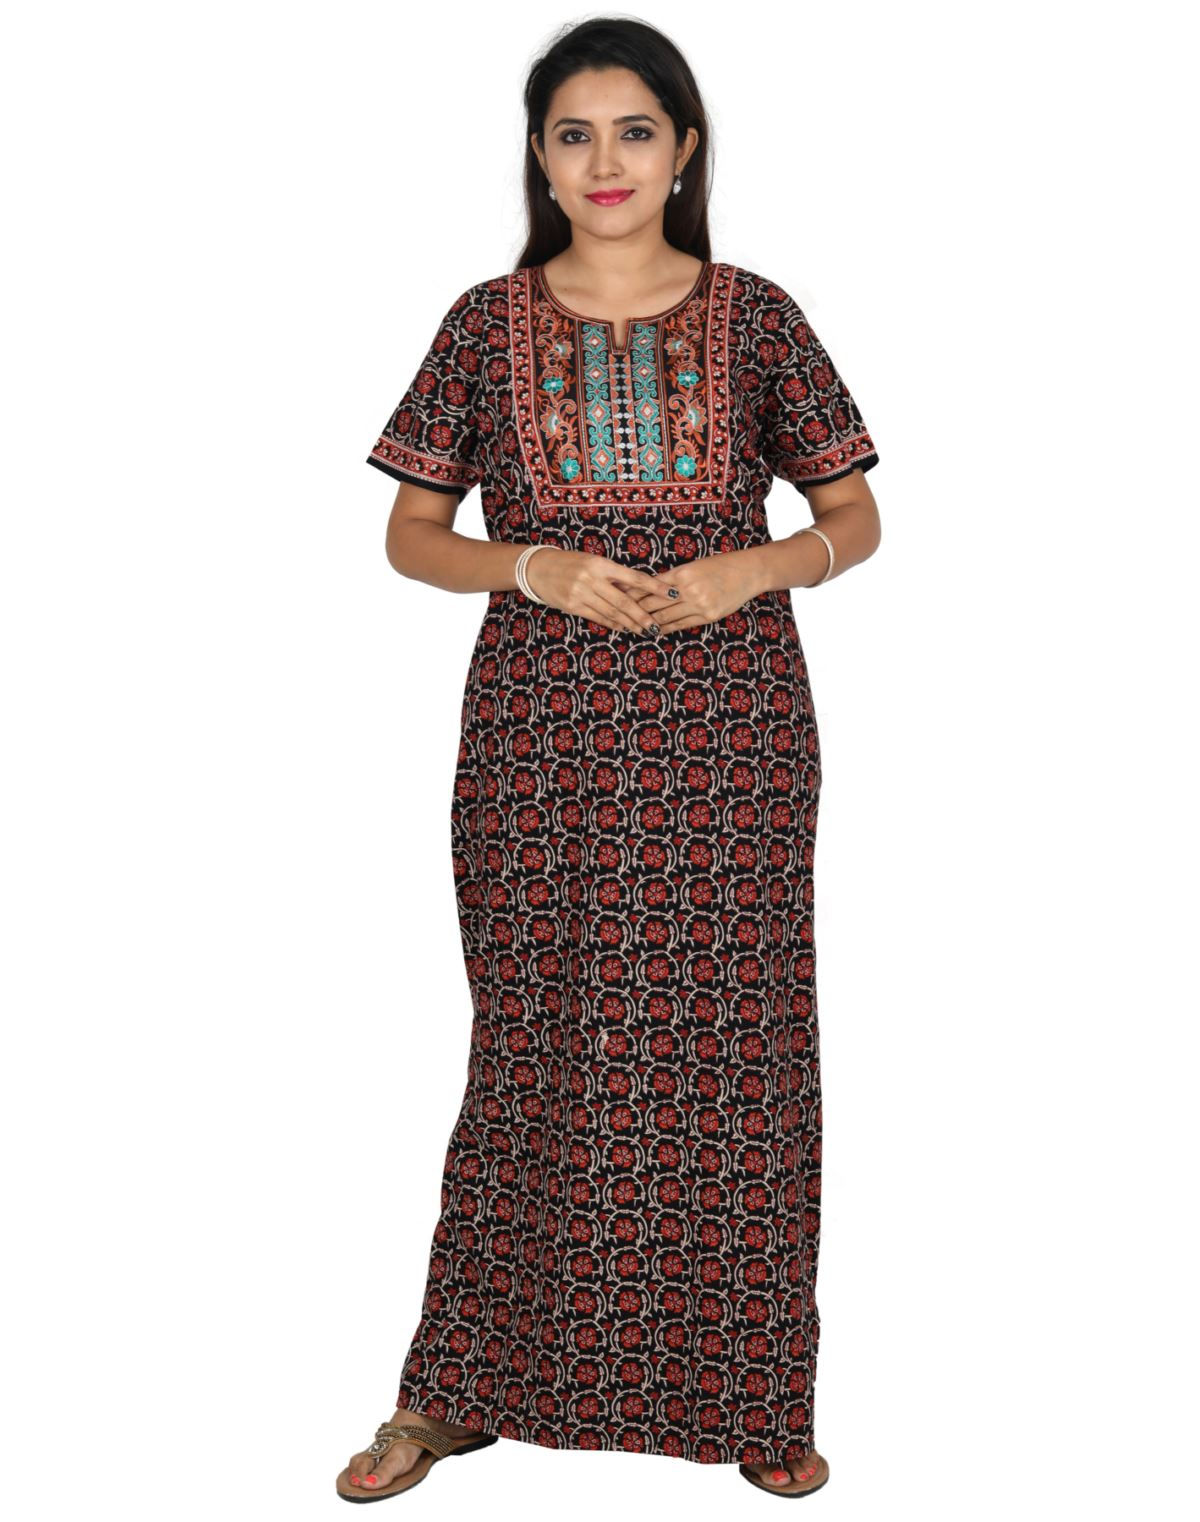 Womens Long Jaipuri Cotton Nightie - No zip - Slim Fit - Nighty House